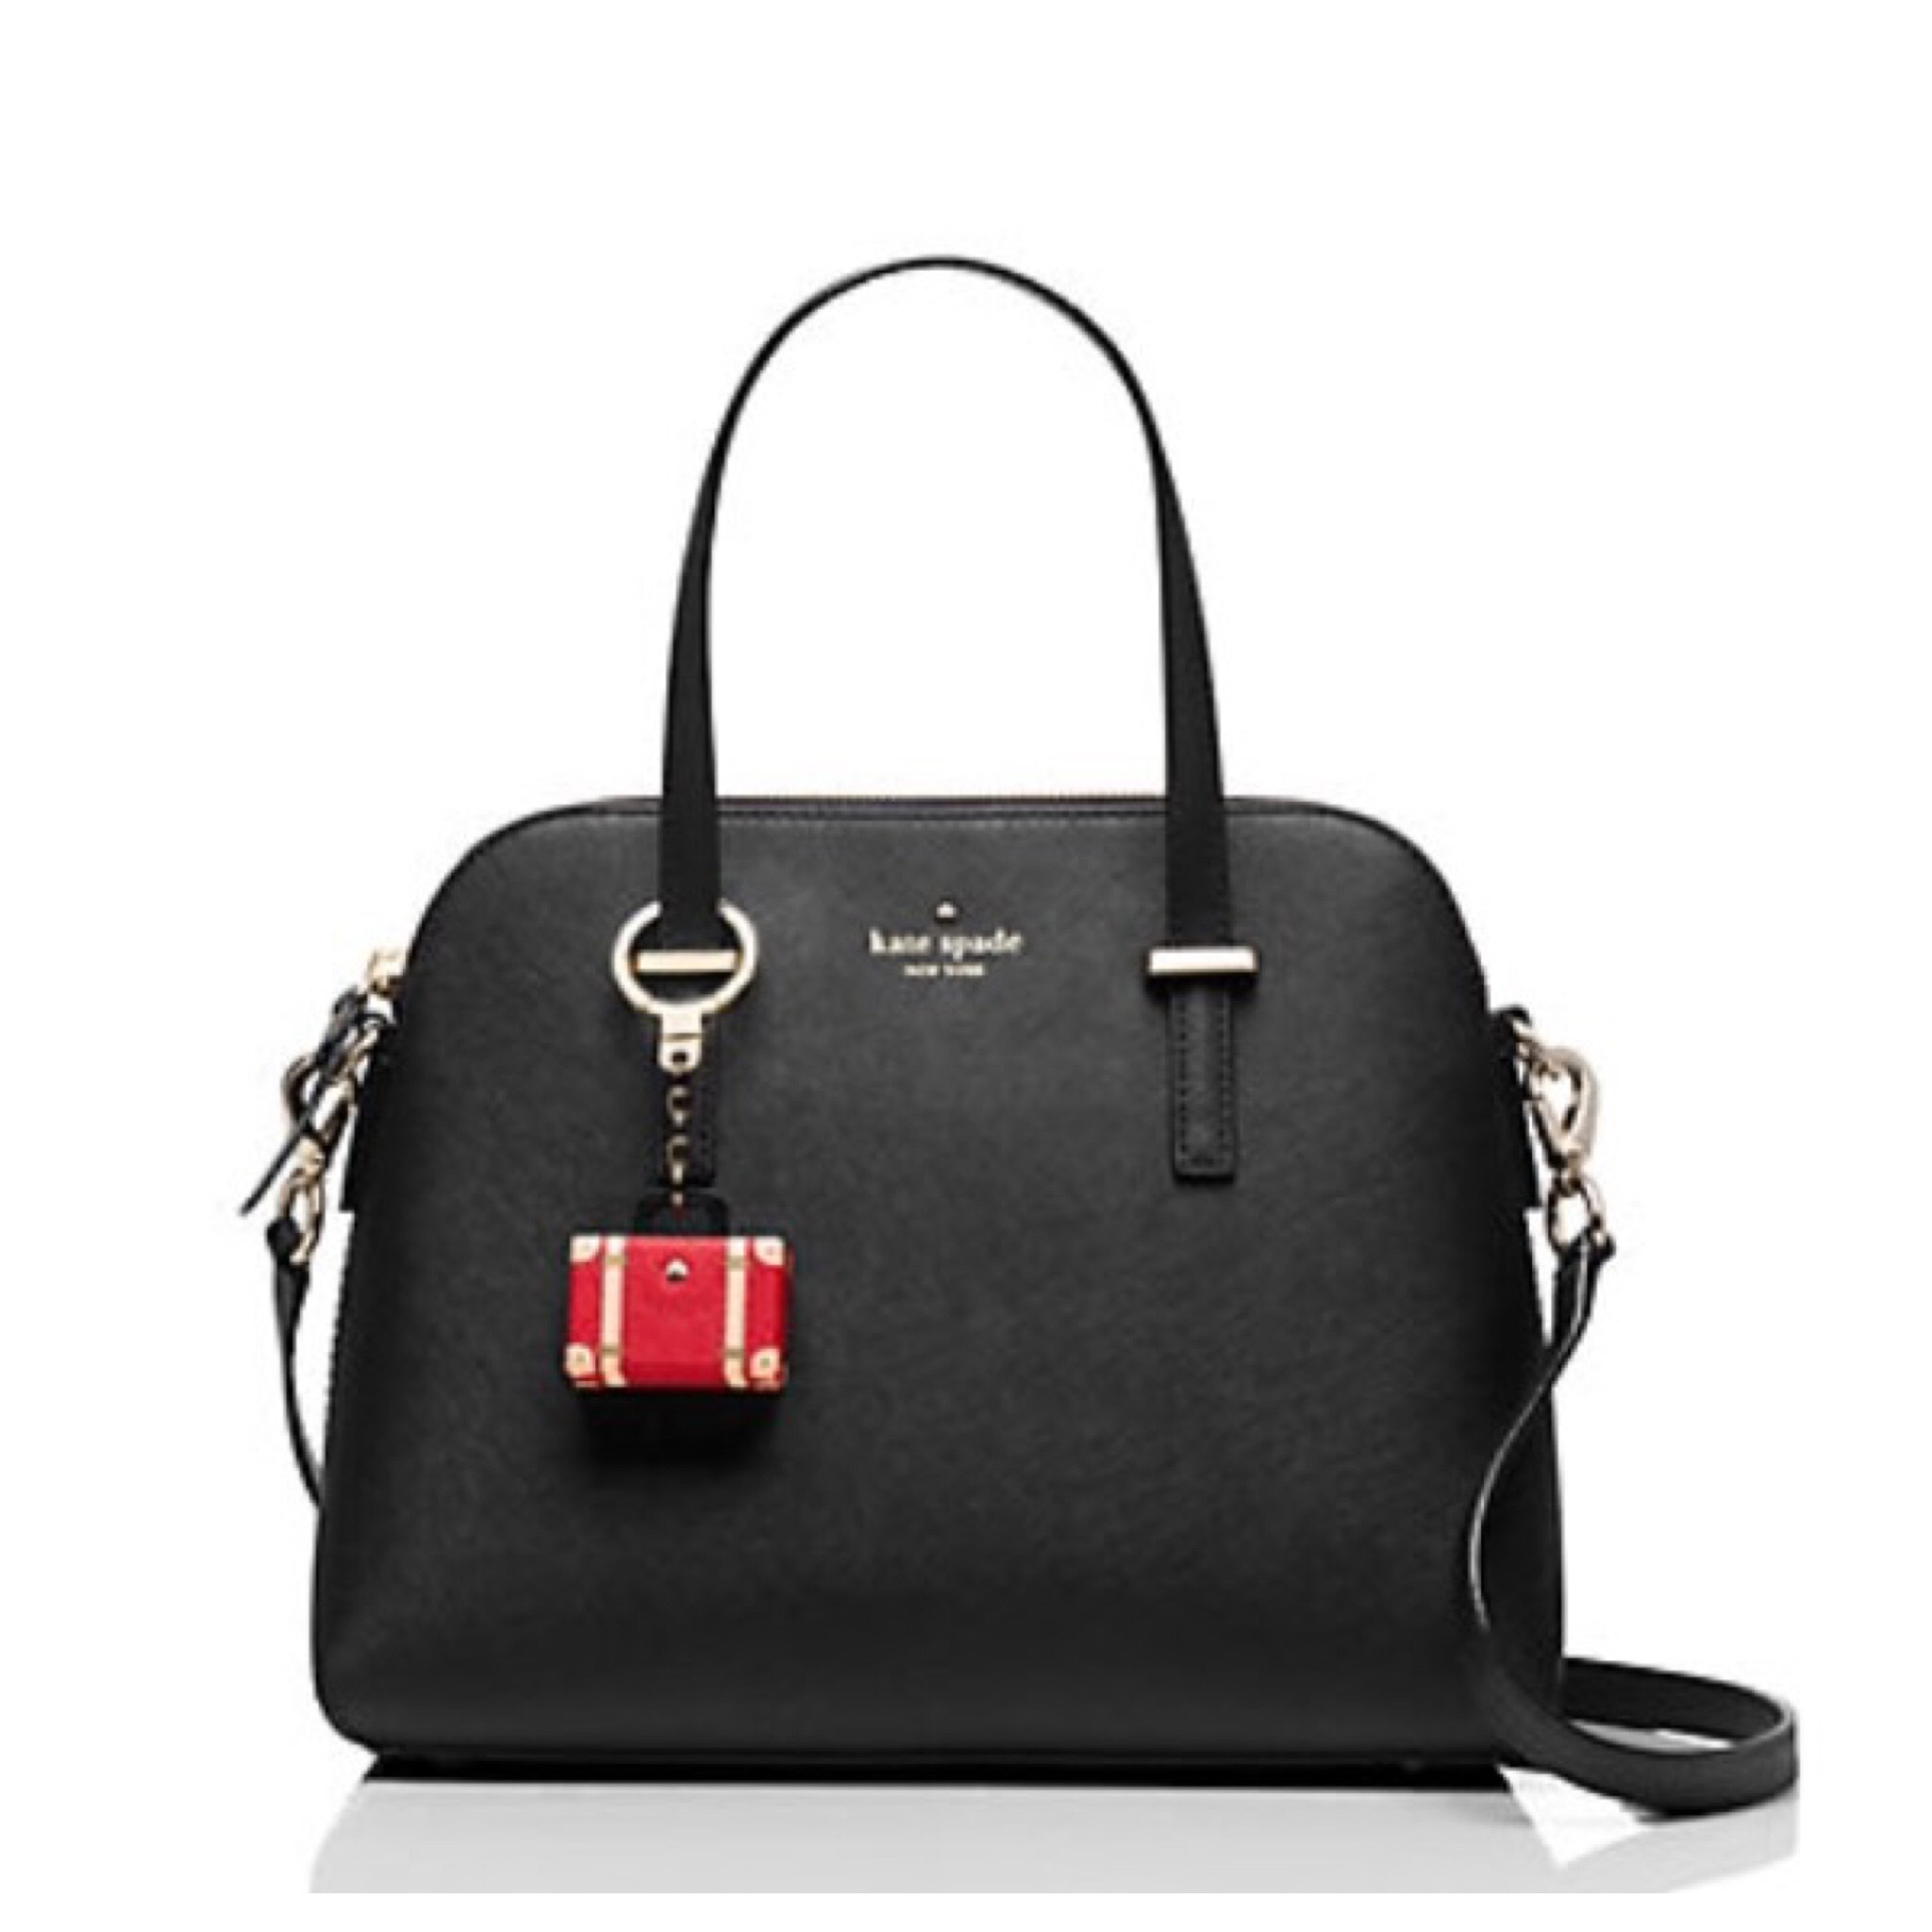 kate spade /キーリング/ suitcase keychain (スーツケース)